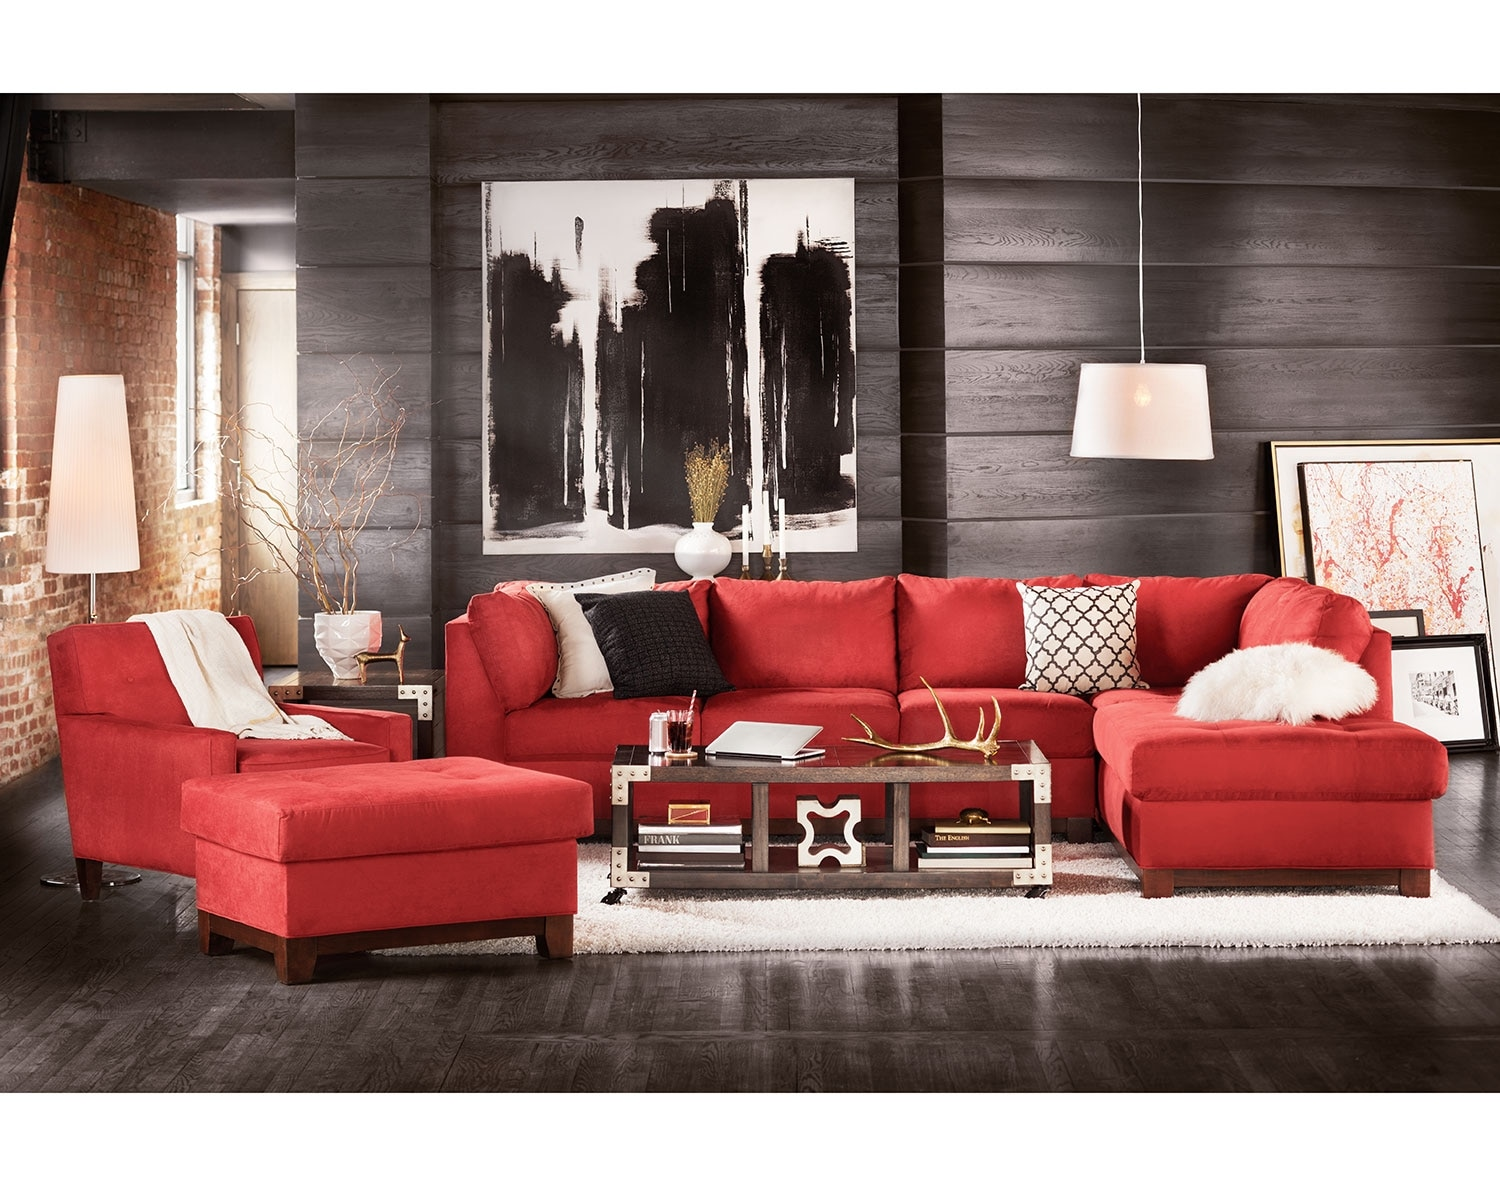 Best Living Room Furniture Brands high quality living room furniture